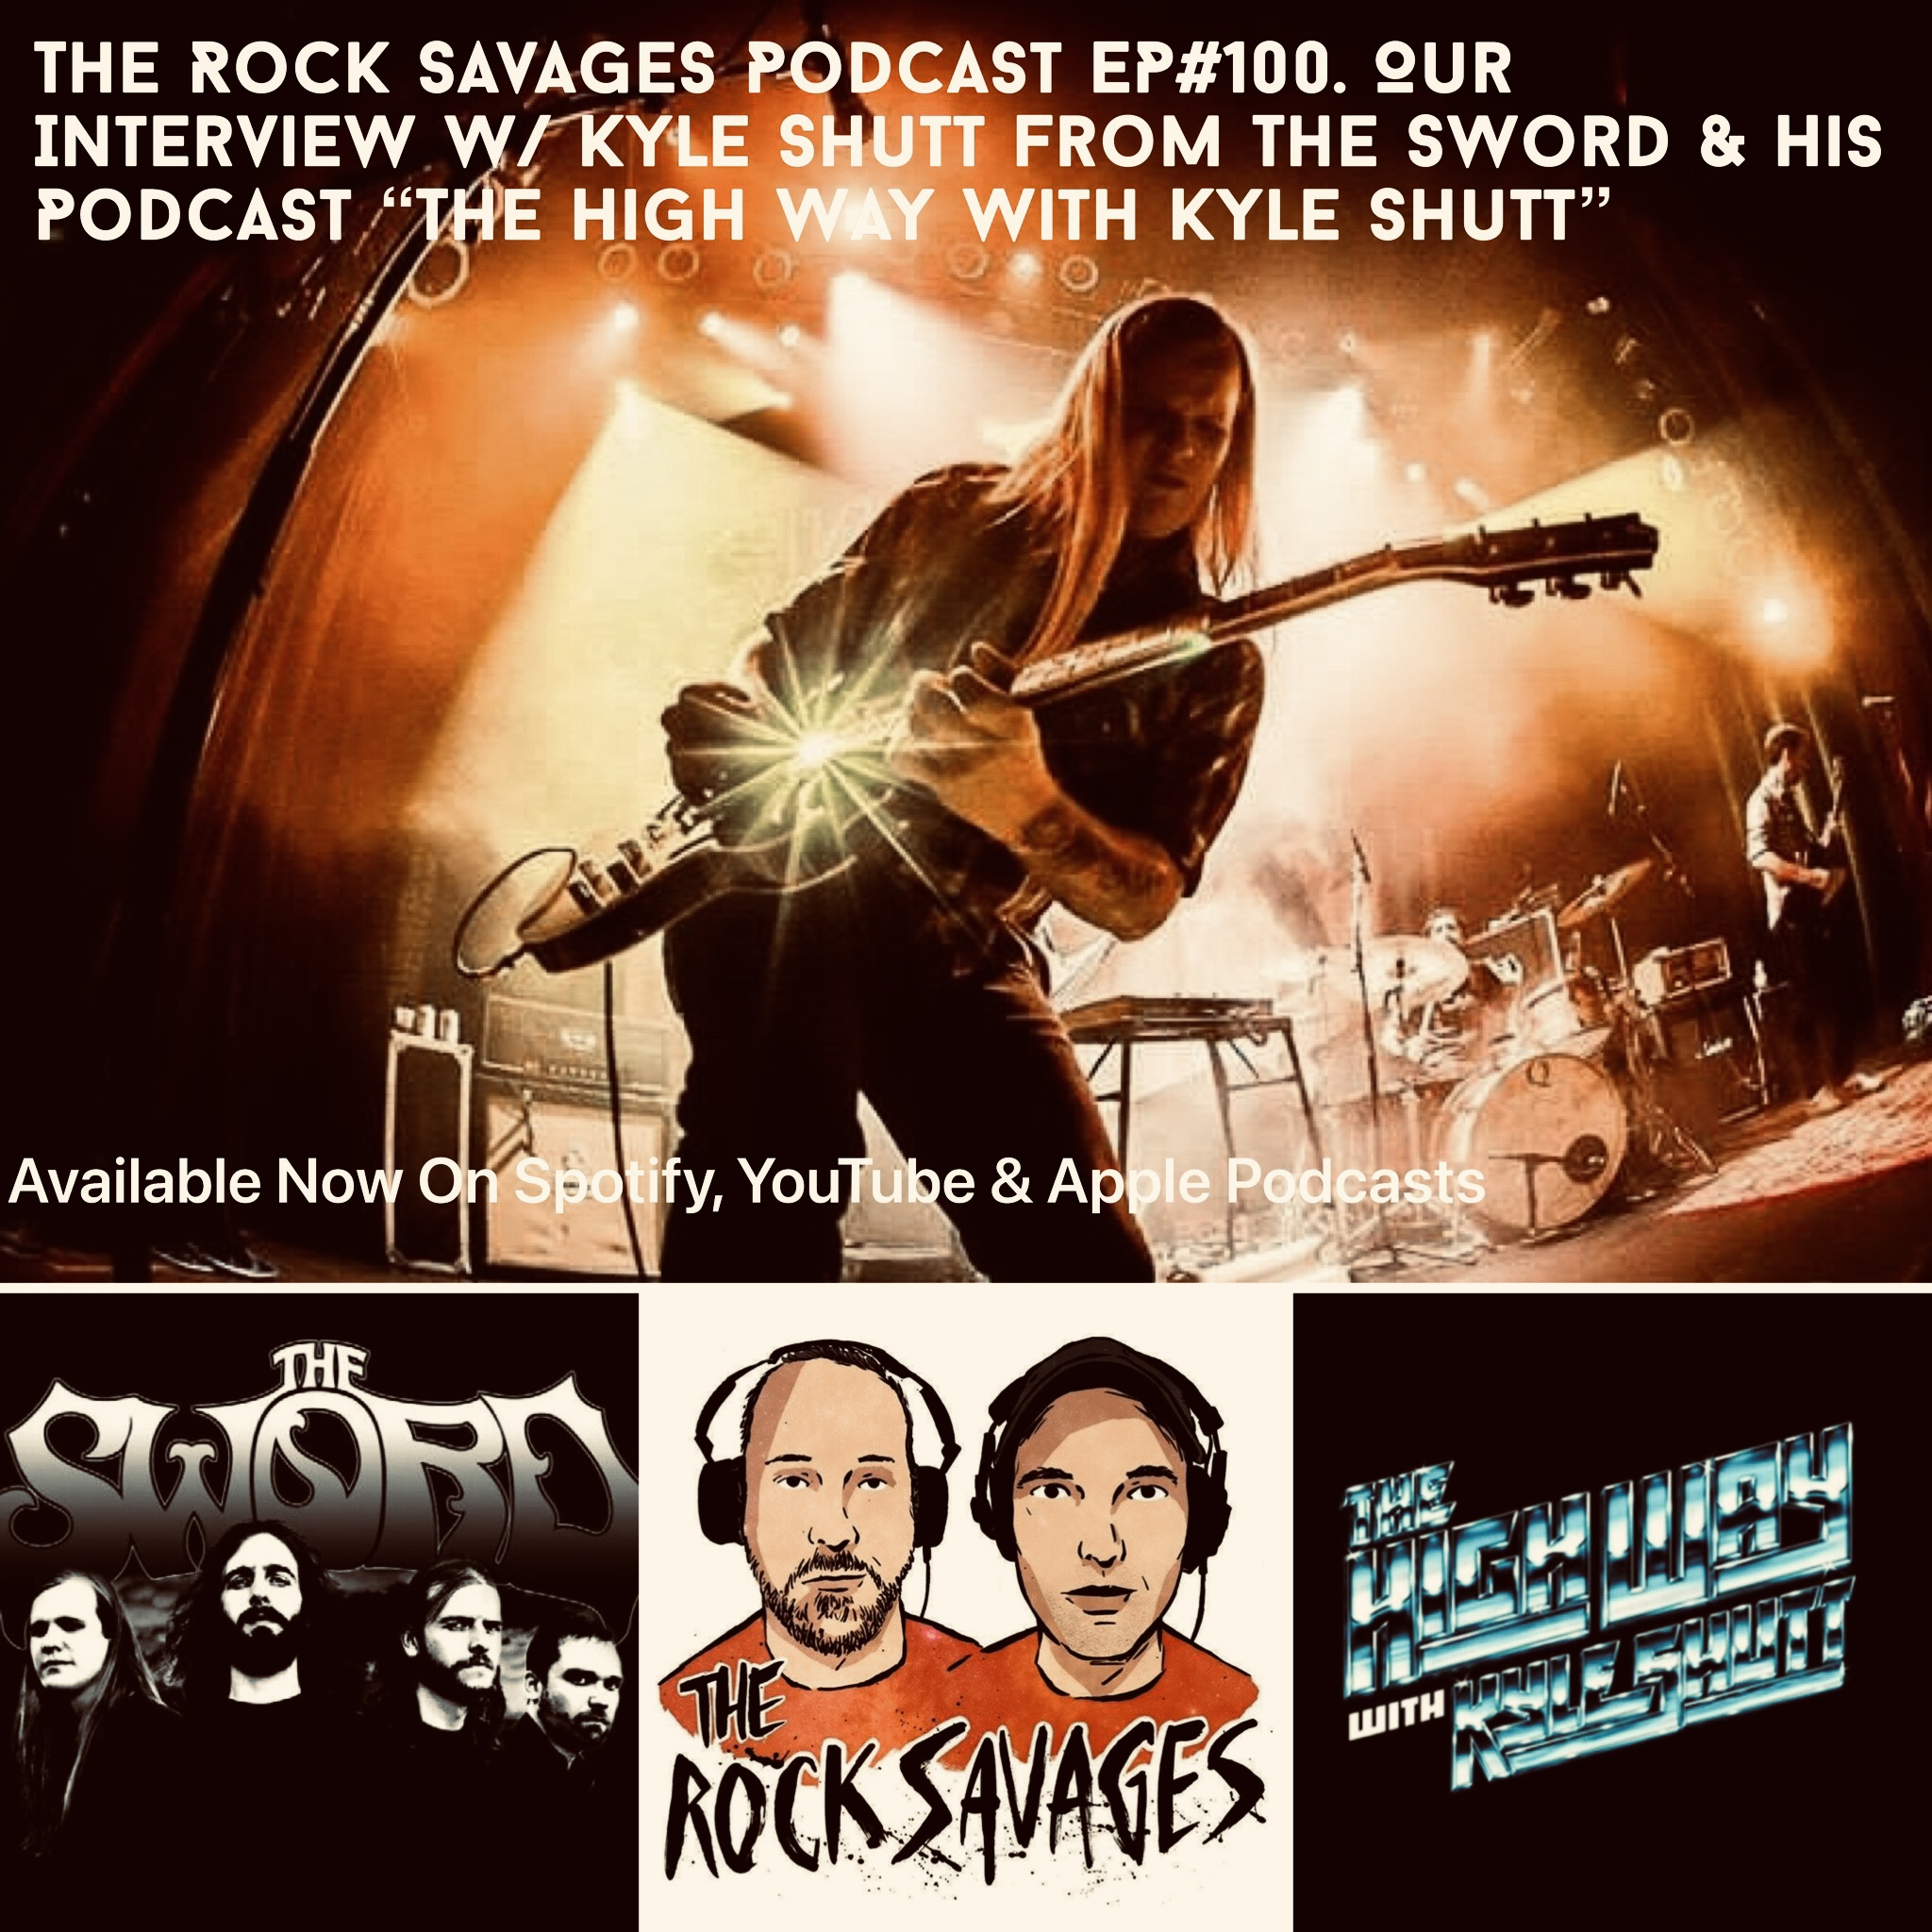 The Rock Savages Talk With Guitarist Kyle Shutt Of The Sword